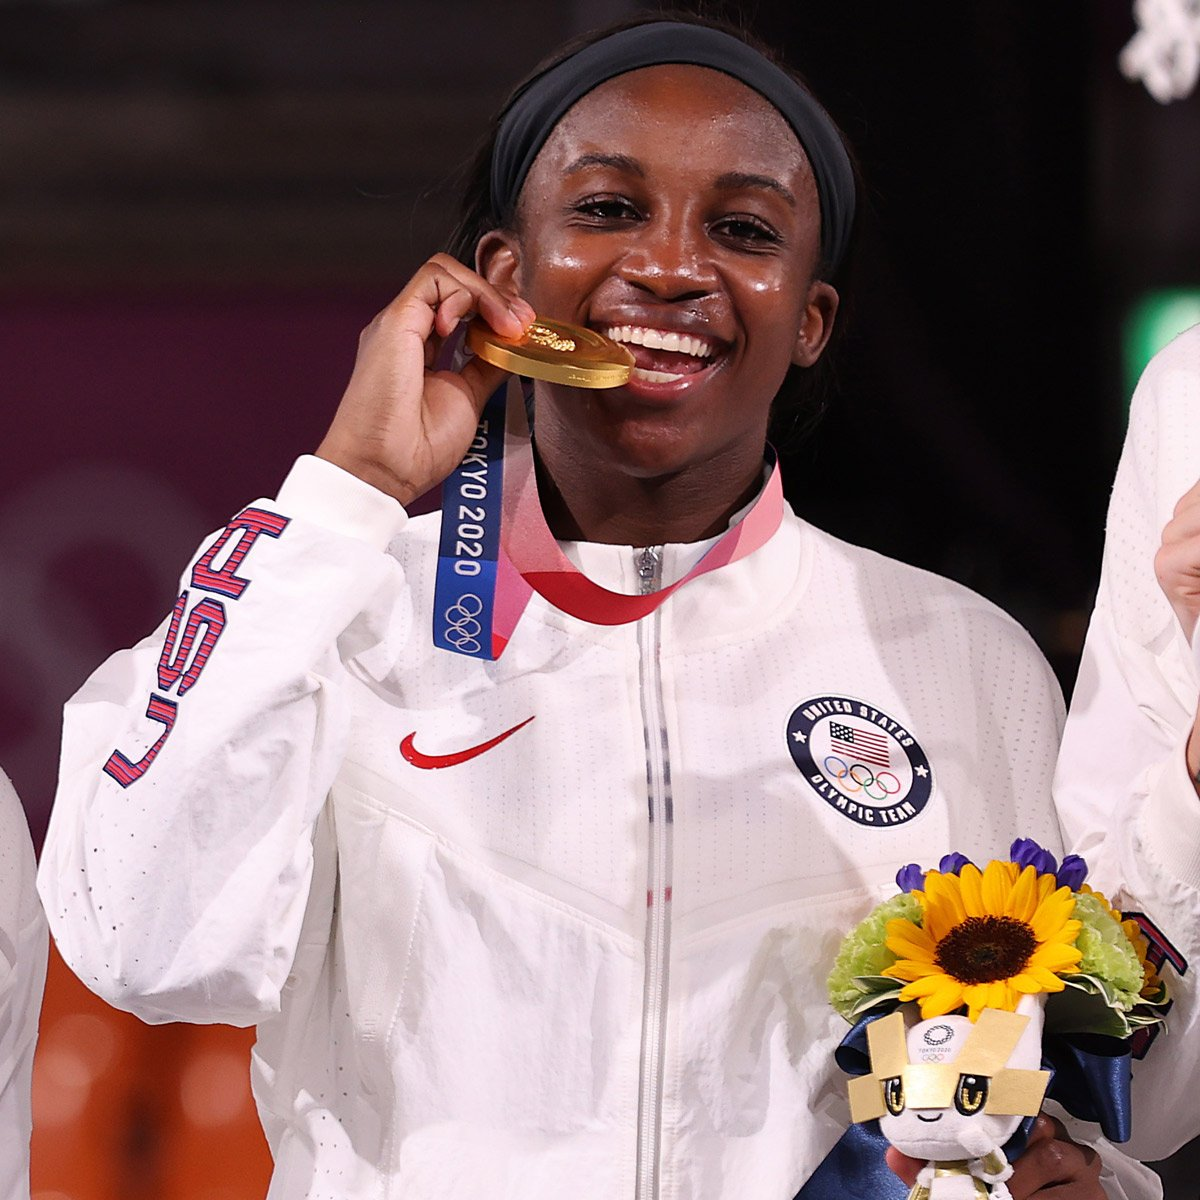 Meet the Olympic Gold Medalist Who Joined the Women's 3x3 Basketball Team Just 11 Days Ago